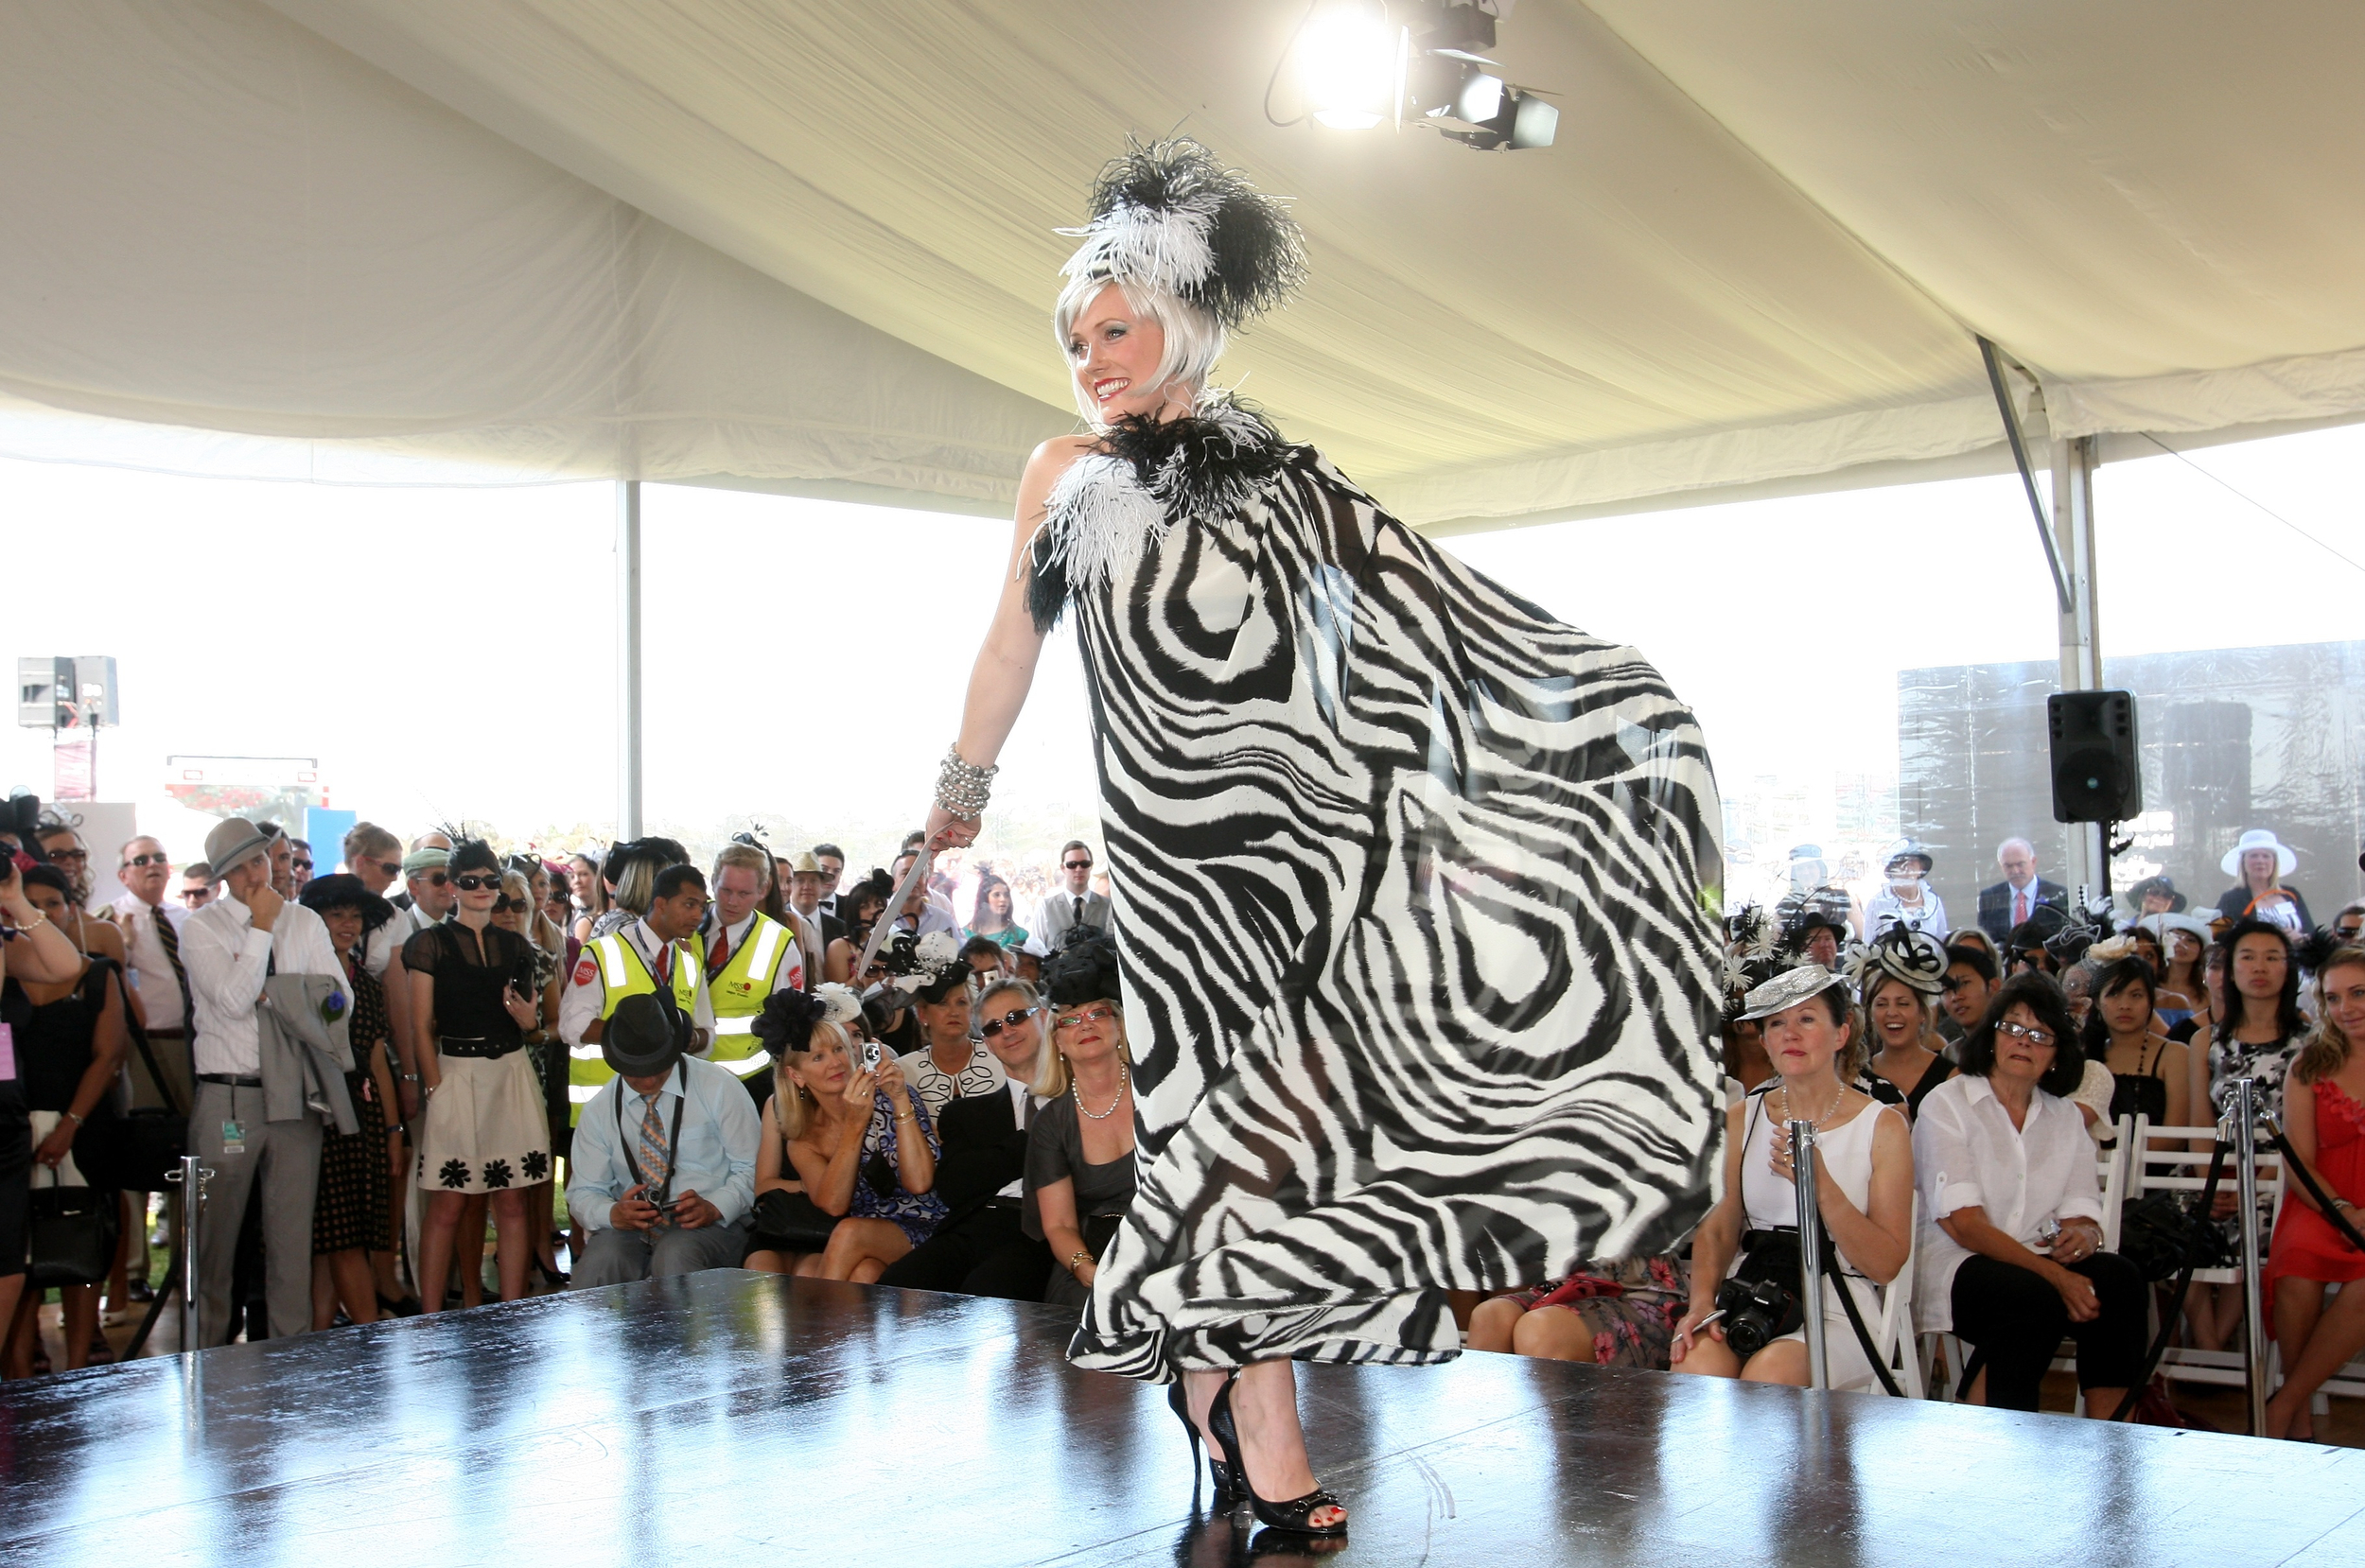 rosa 2nd runner up at derby day  fashions on the field.jpg